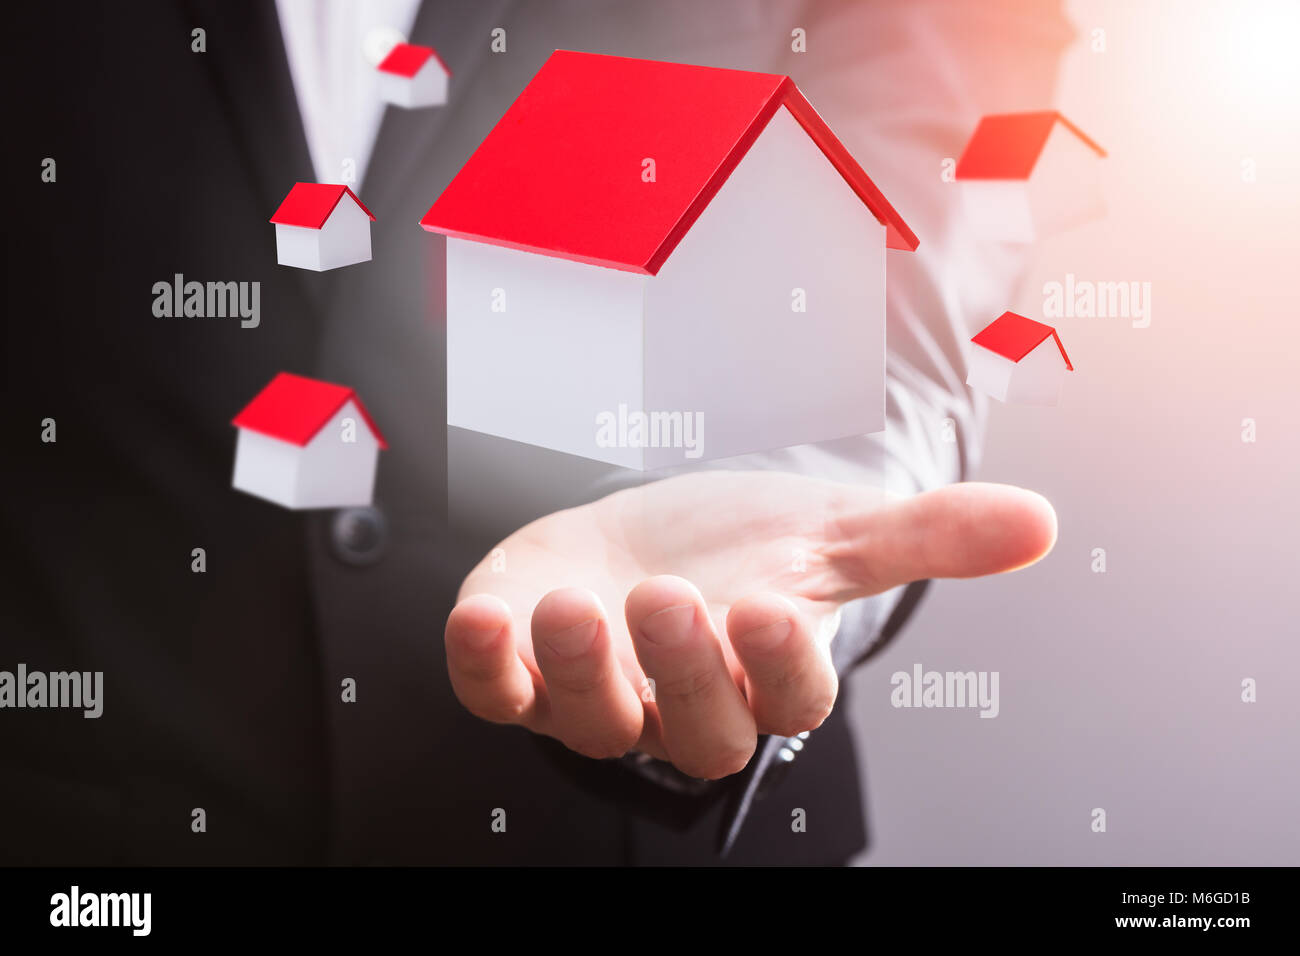 Close-up Of A House Models With Red Roof Floating In Mid-air Over Businessperson's Hand - Stock Image